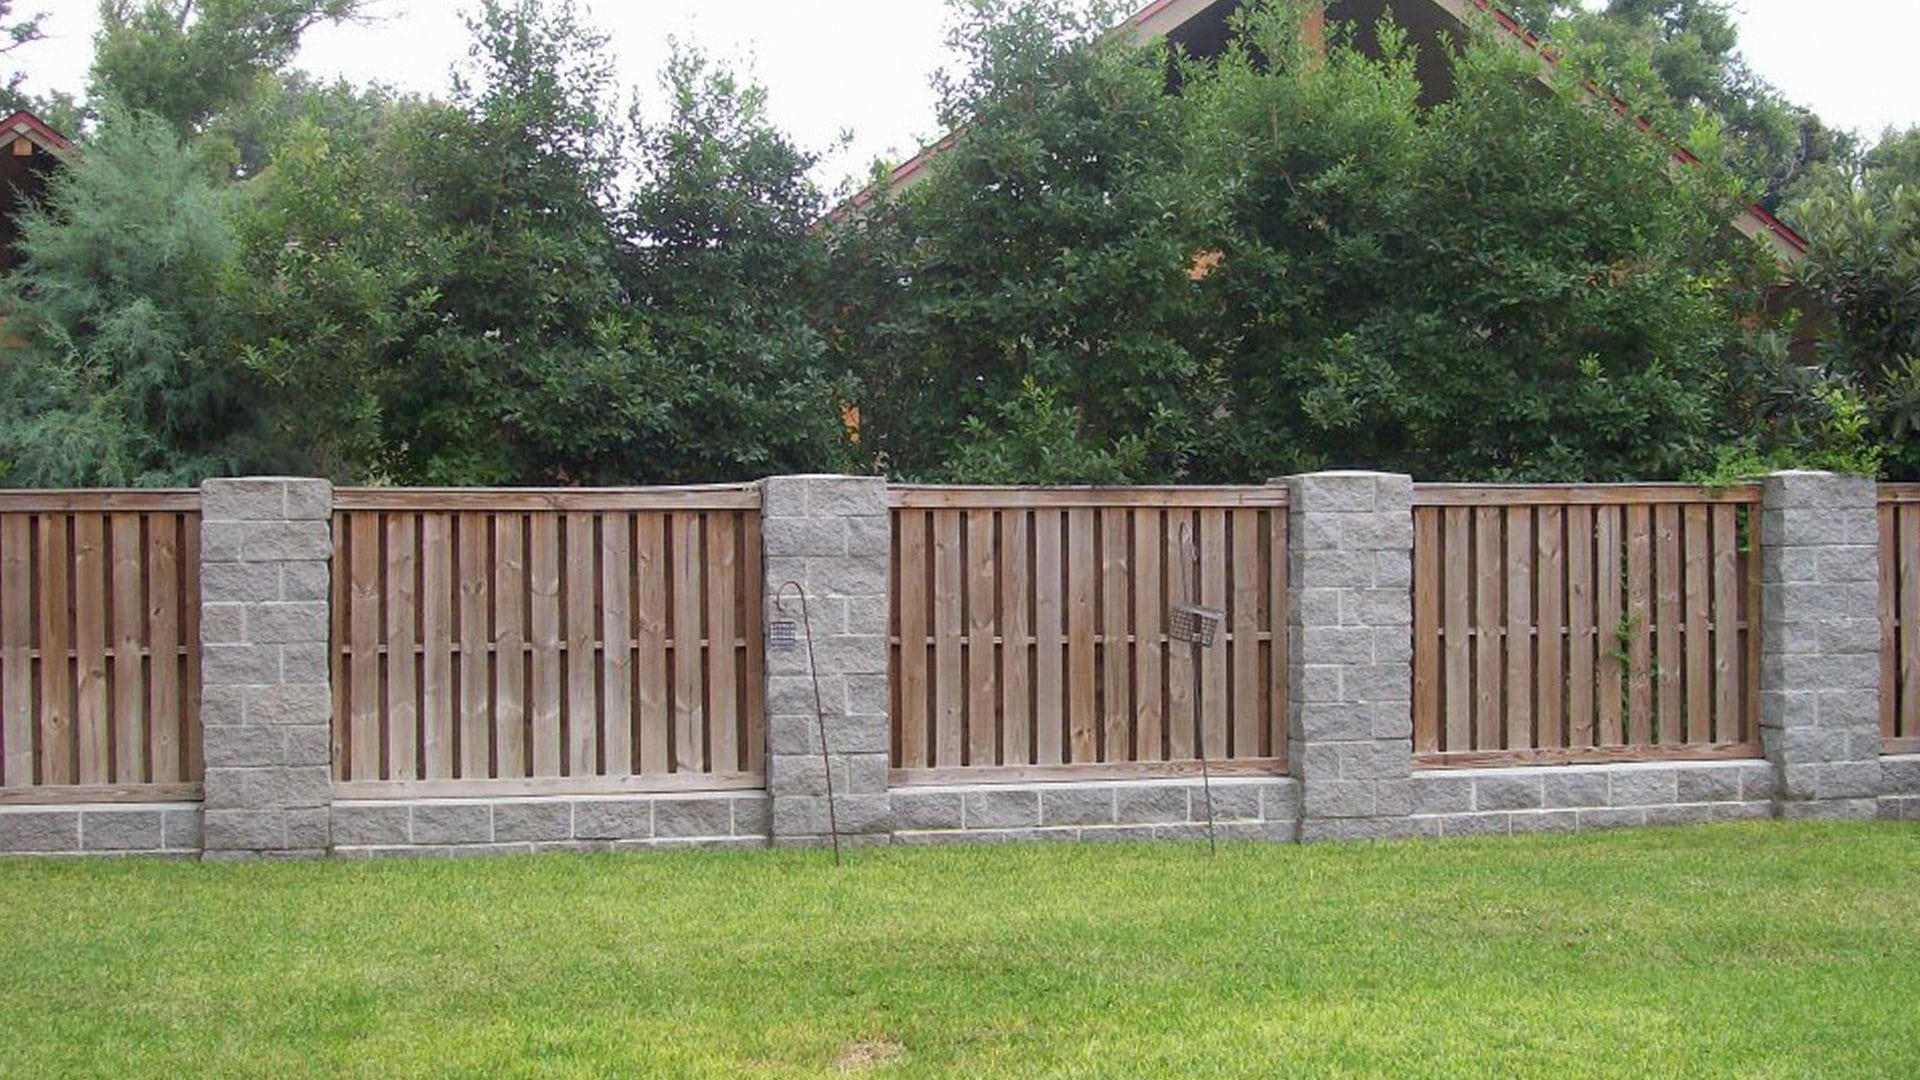 Wooden fencing and cobblestone